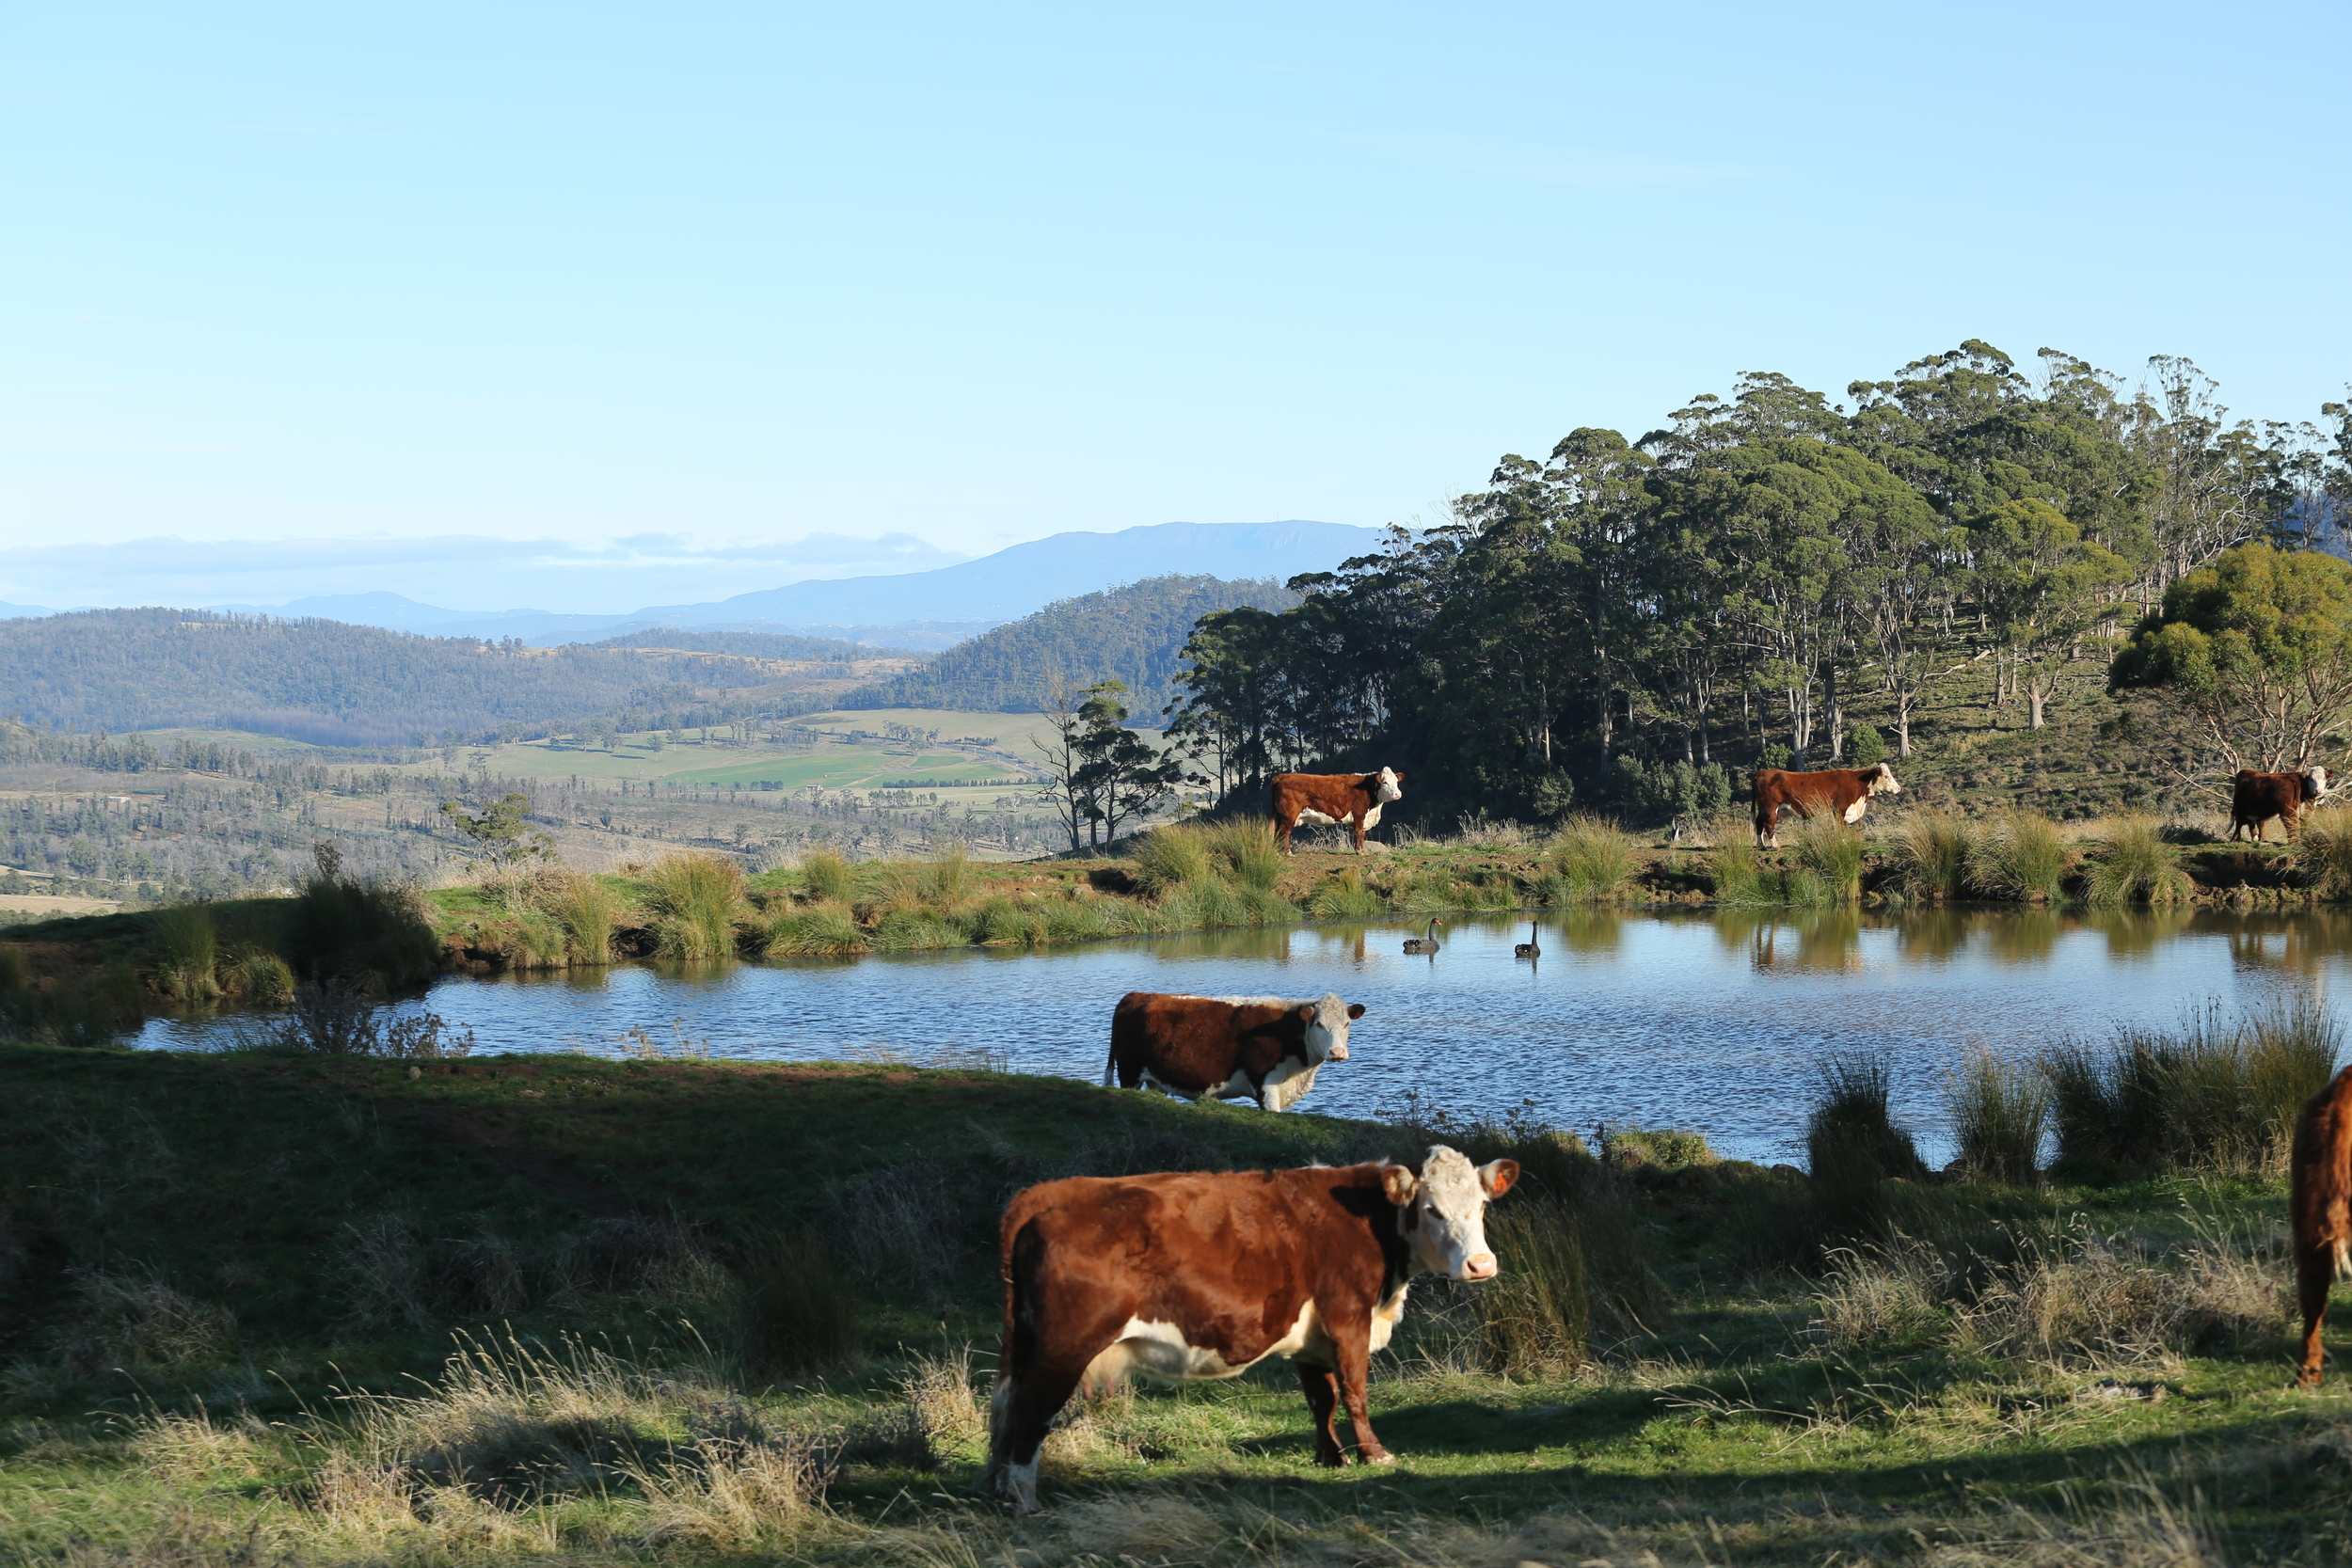 Cows in perennial pasture